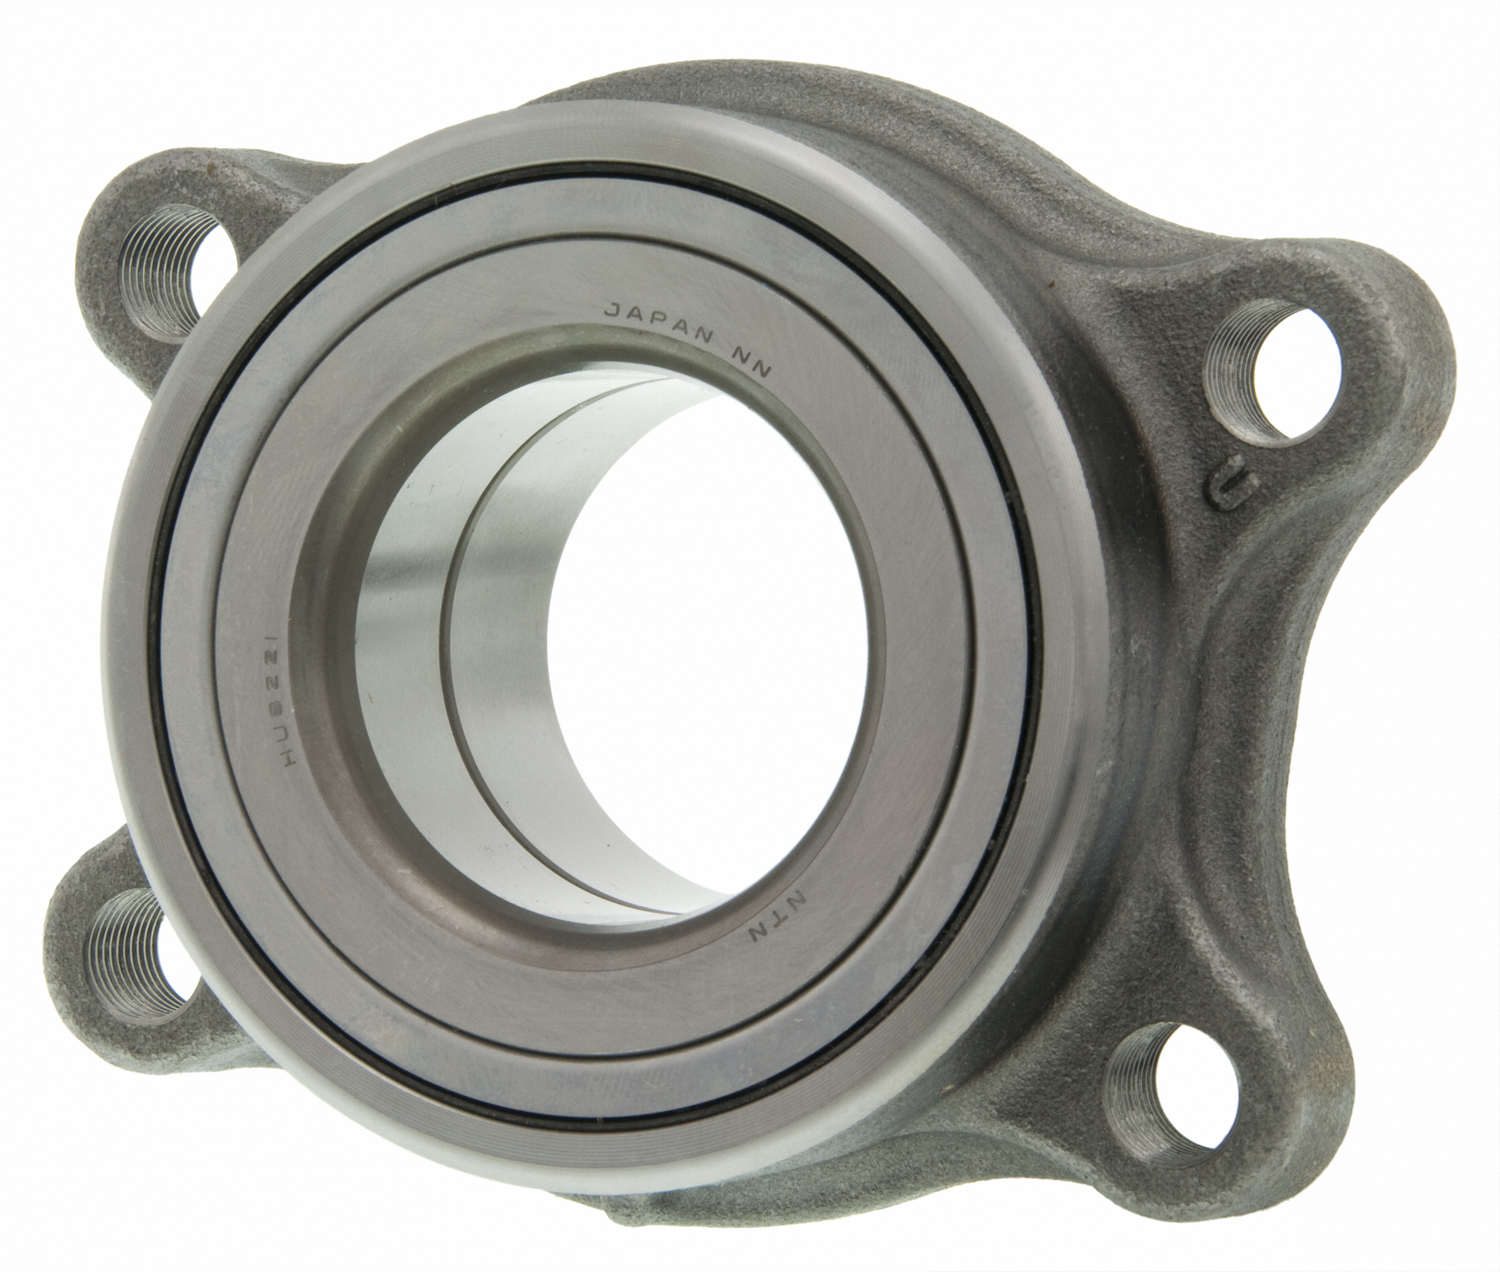 512346 Moog Hub Assemblies Wheel Bearing and Hub Assembly OE